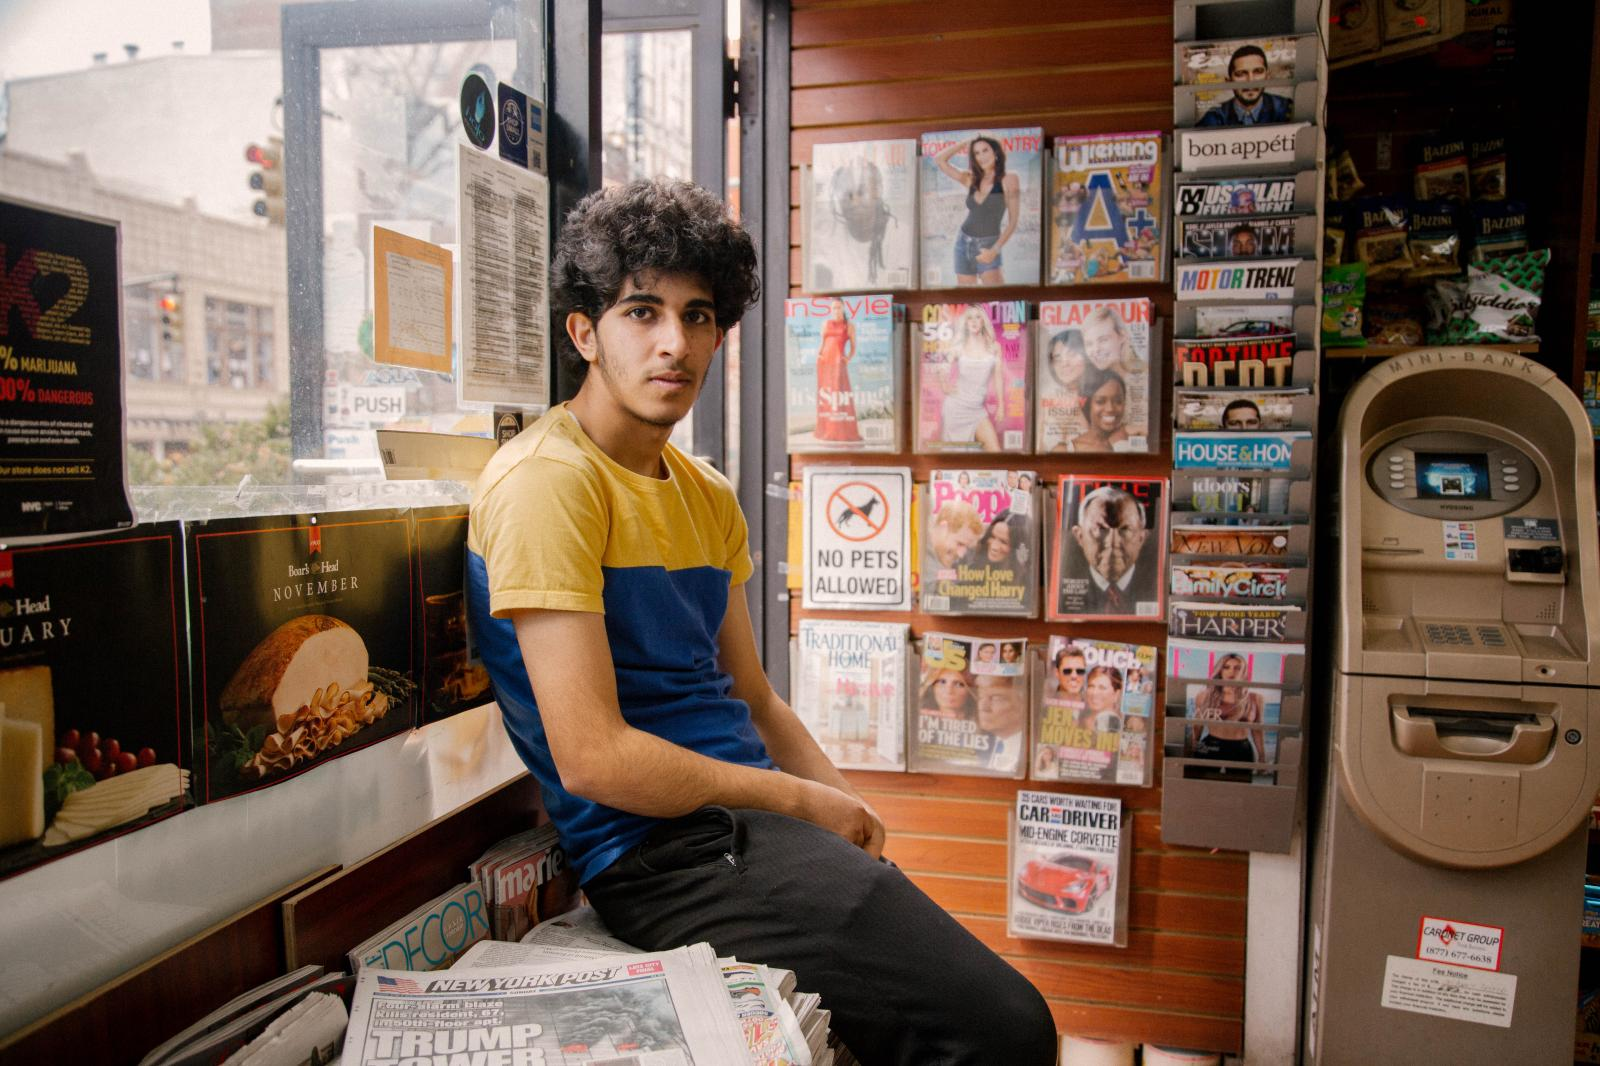 Osama Alsahybi, 20, sits in his brother's deli in the Brooklyn Heights neighborhood of Brooklyn, New York. Osama has been in the U.S. for just under two years. Having zero English knowledge prior to coming to the US, he now speaks easily, laughs often and has made friends with all the regular customerrs who enter into the deli. To then, he's known simply as Oz.